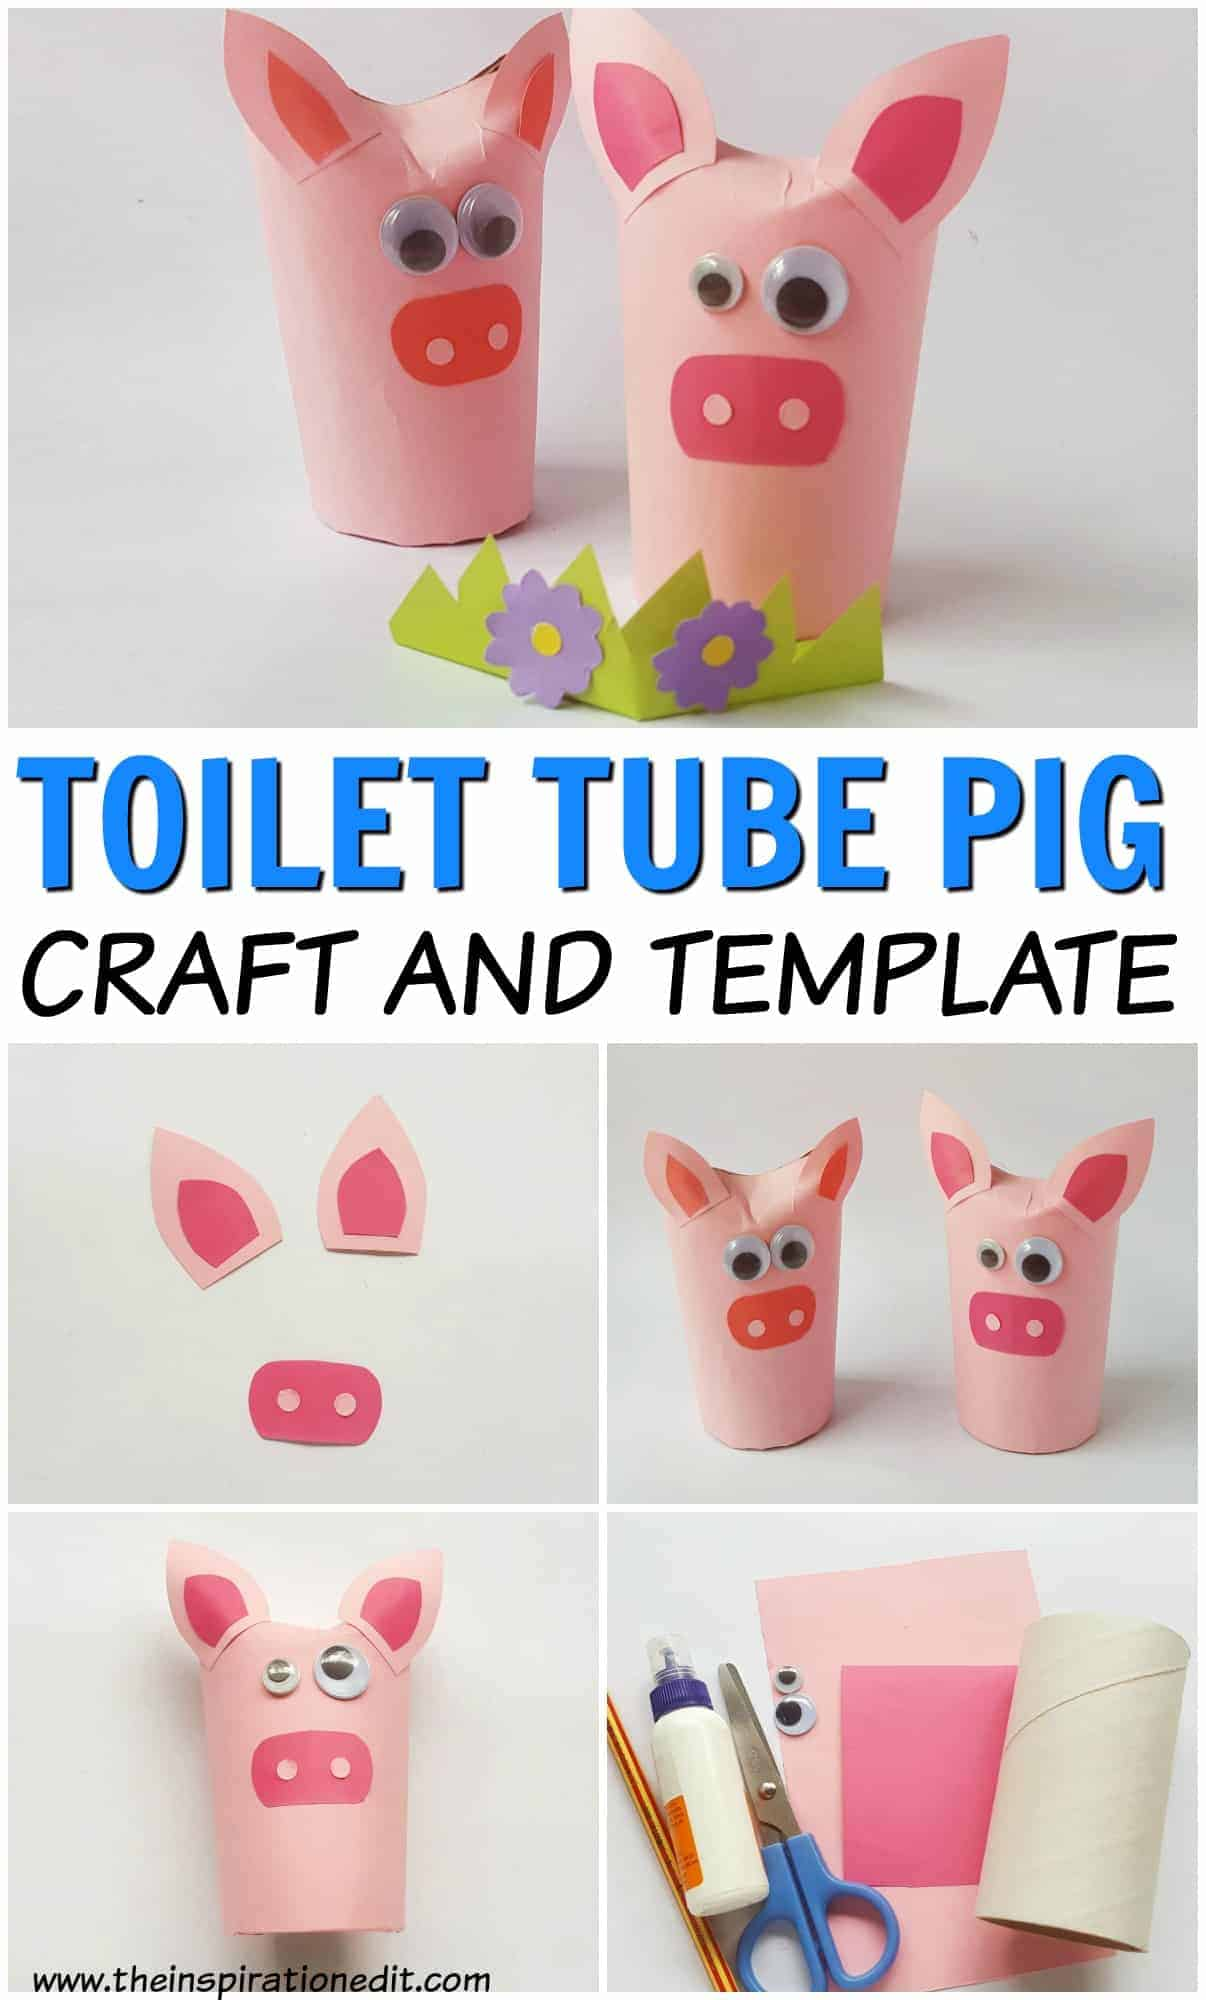 The Three Little Pigs Craft